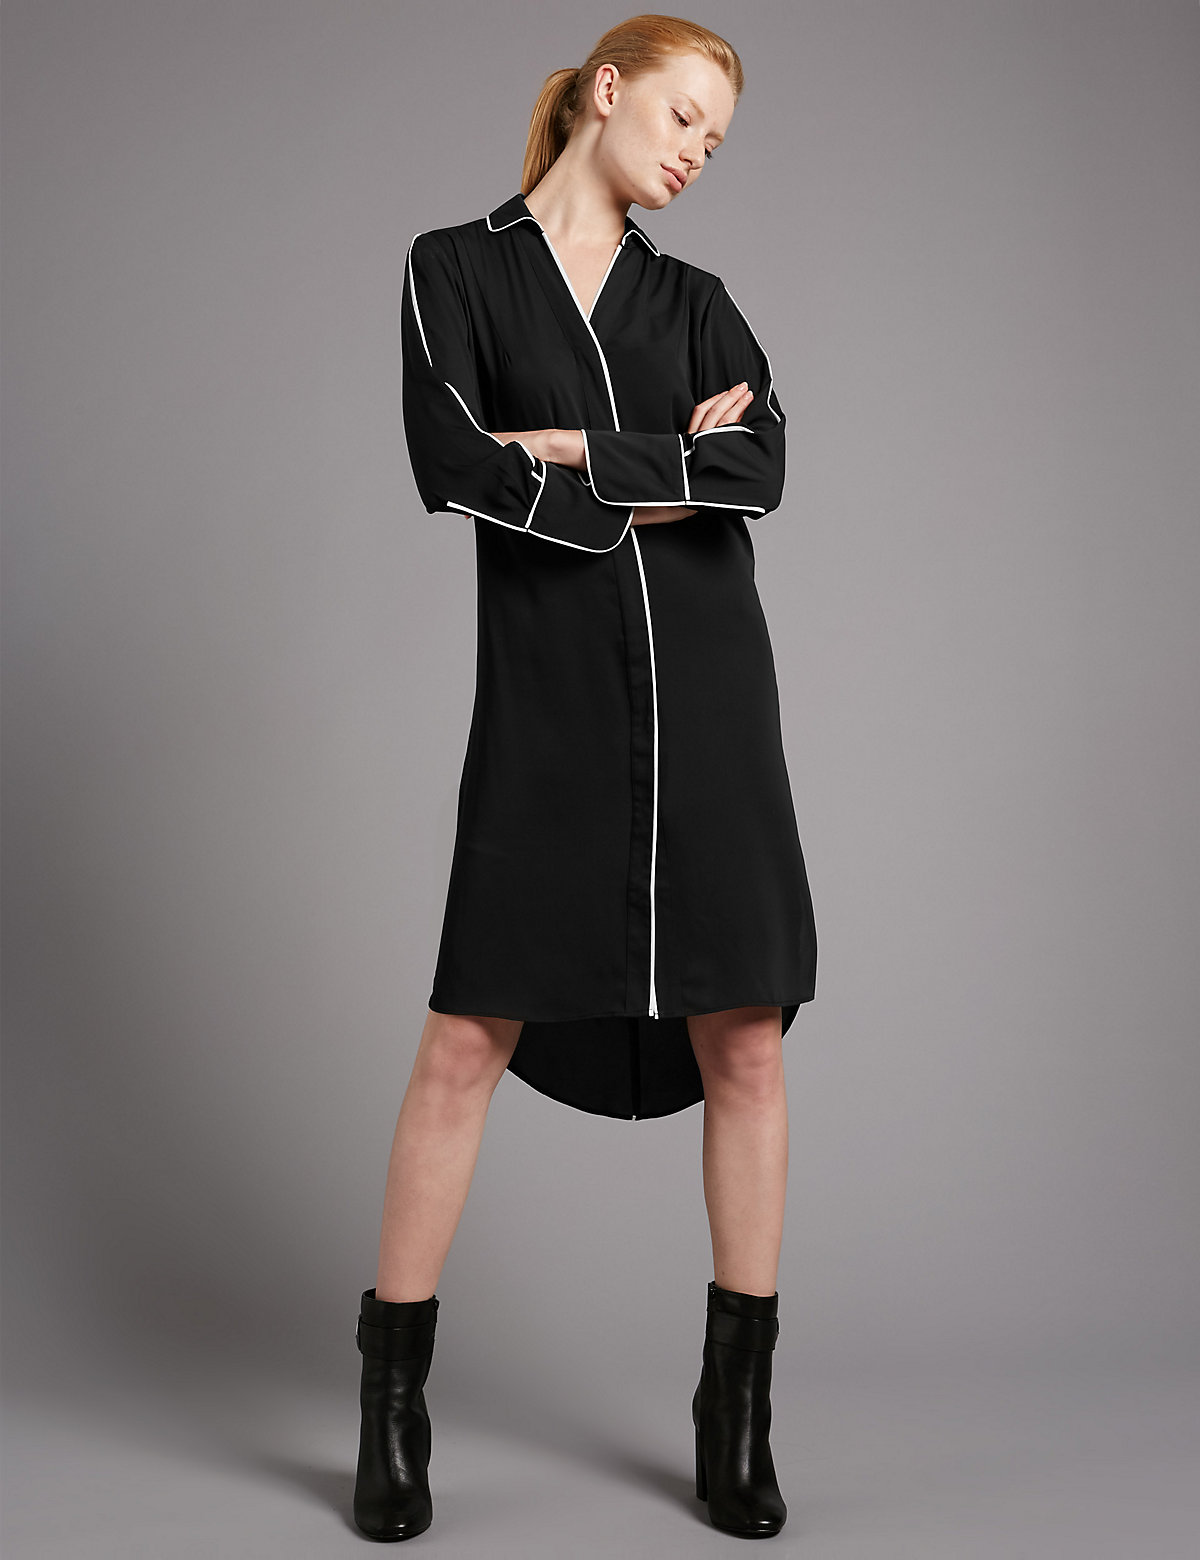 Autograph Contrasting Edge Long Sleeve Tunic Dress